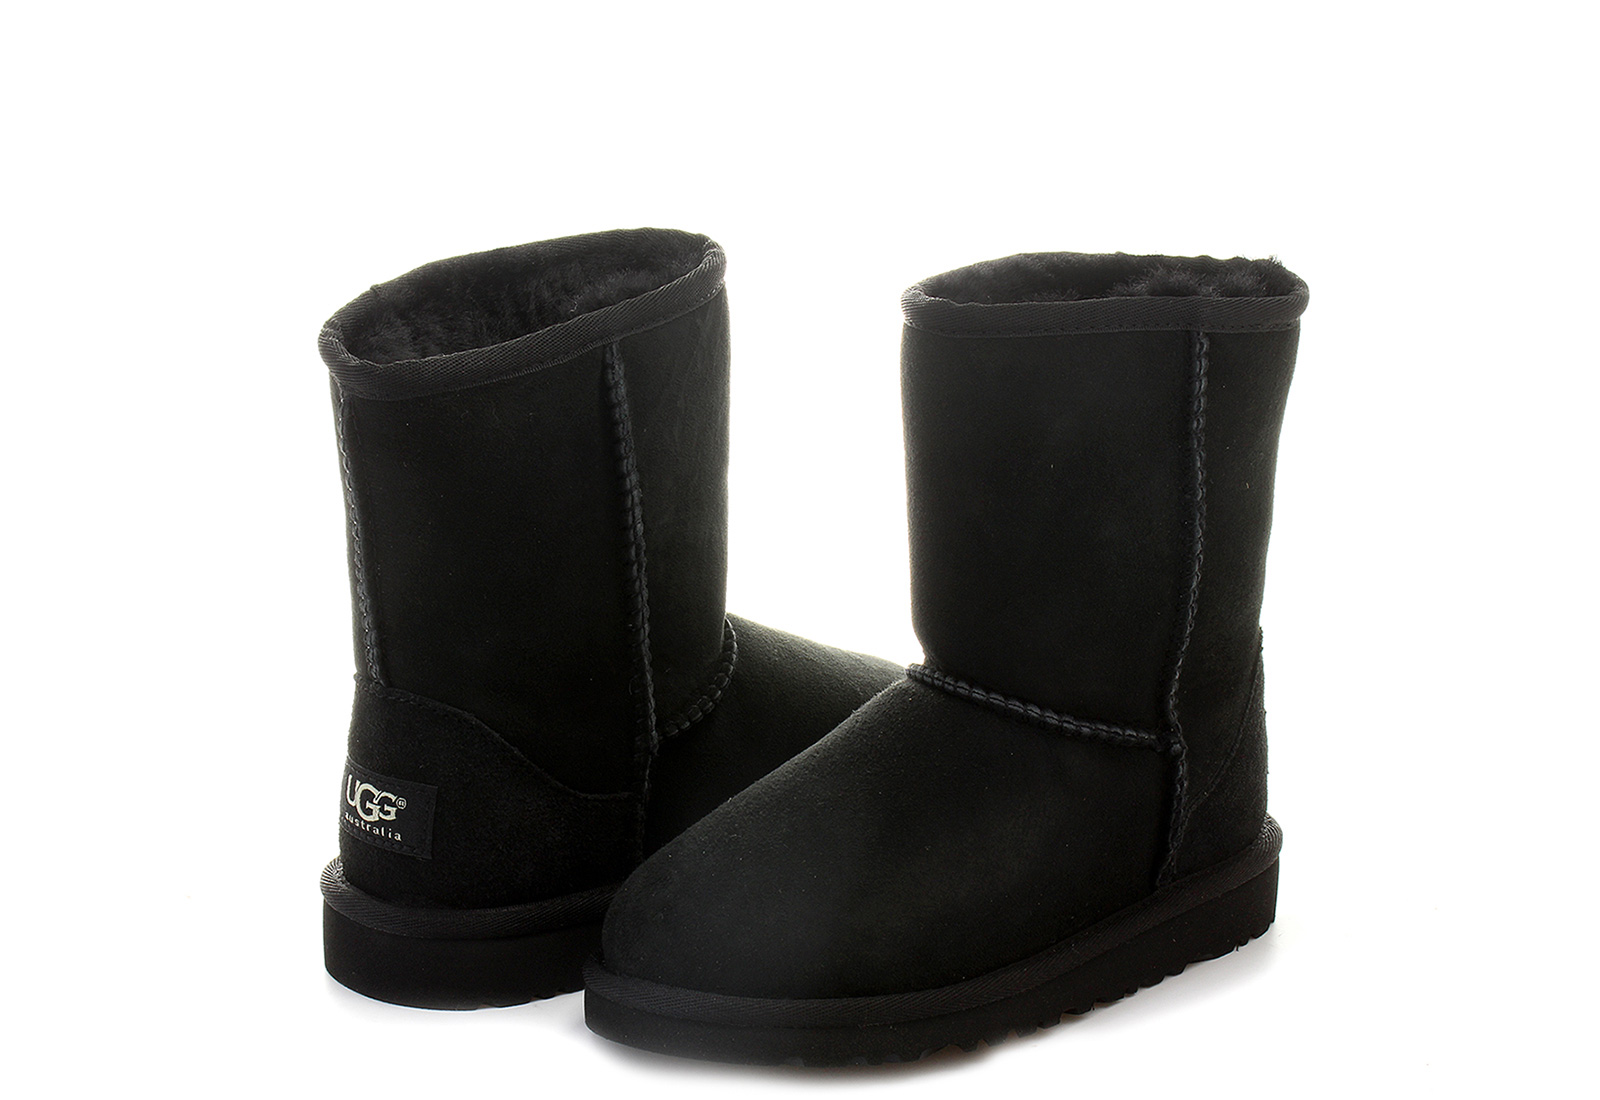 cabbe5ae74b Ugg Boots - T Classic Short - 5251T-BLK - Online shop for sneakers, shoes  and boots